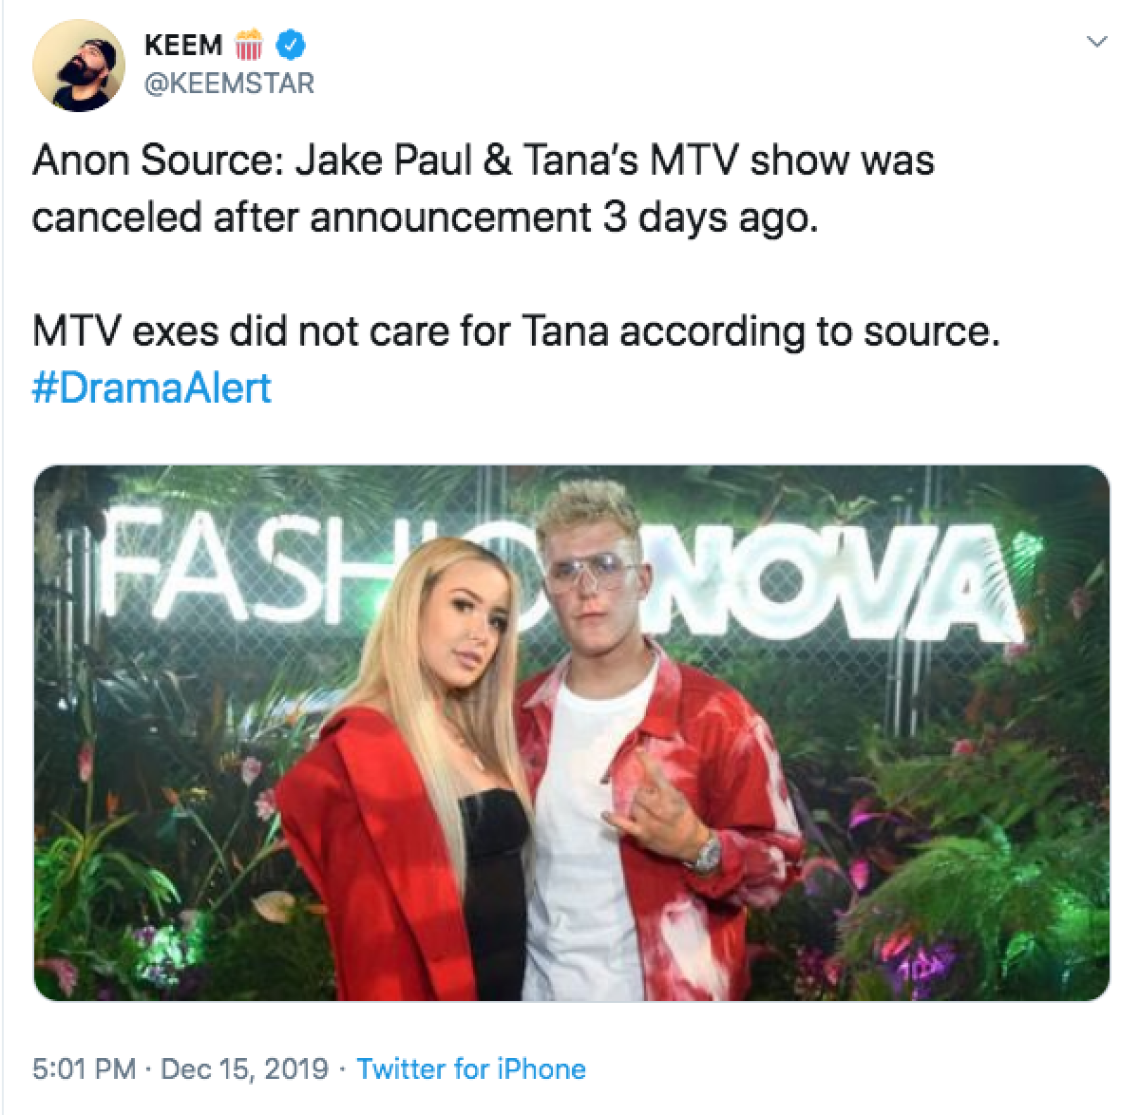 Keemstar Claims Tana And Jake's Show Was Canceled